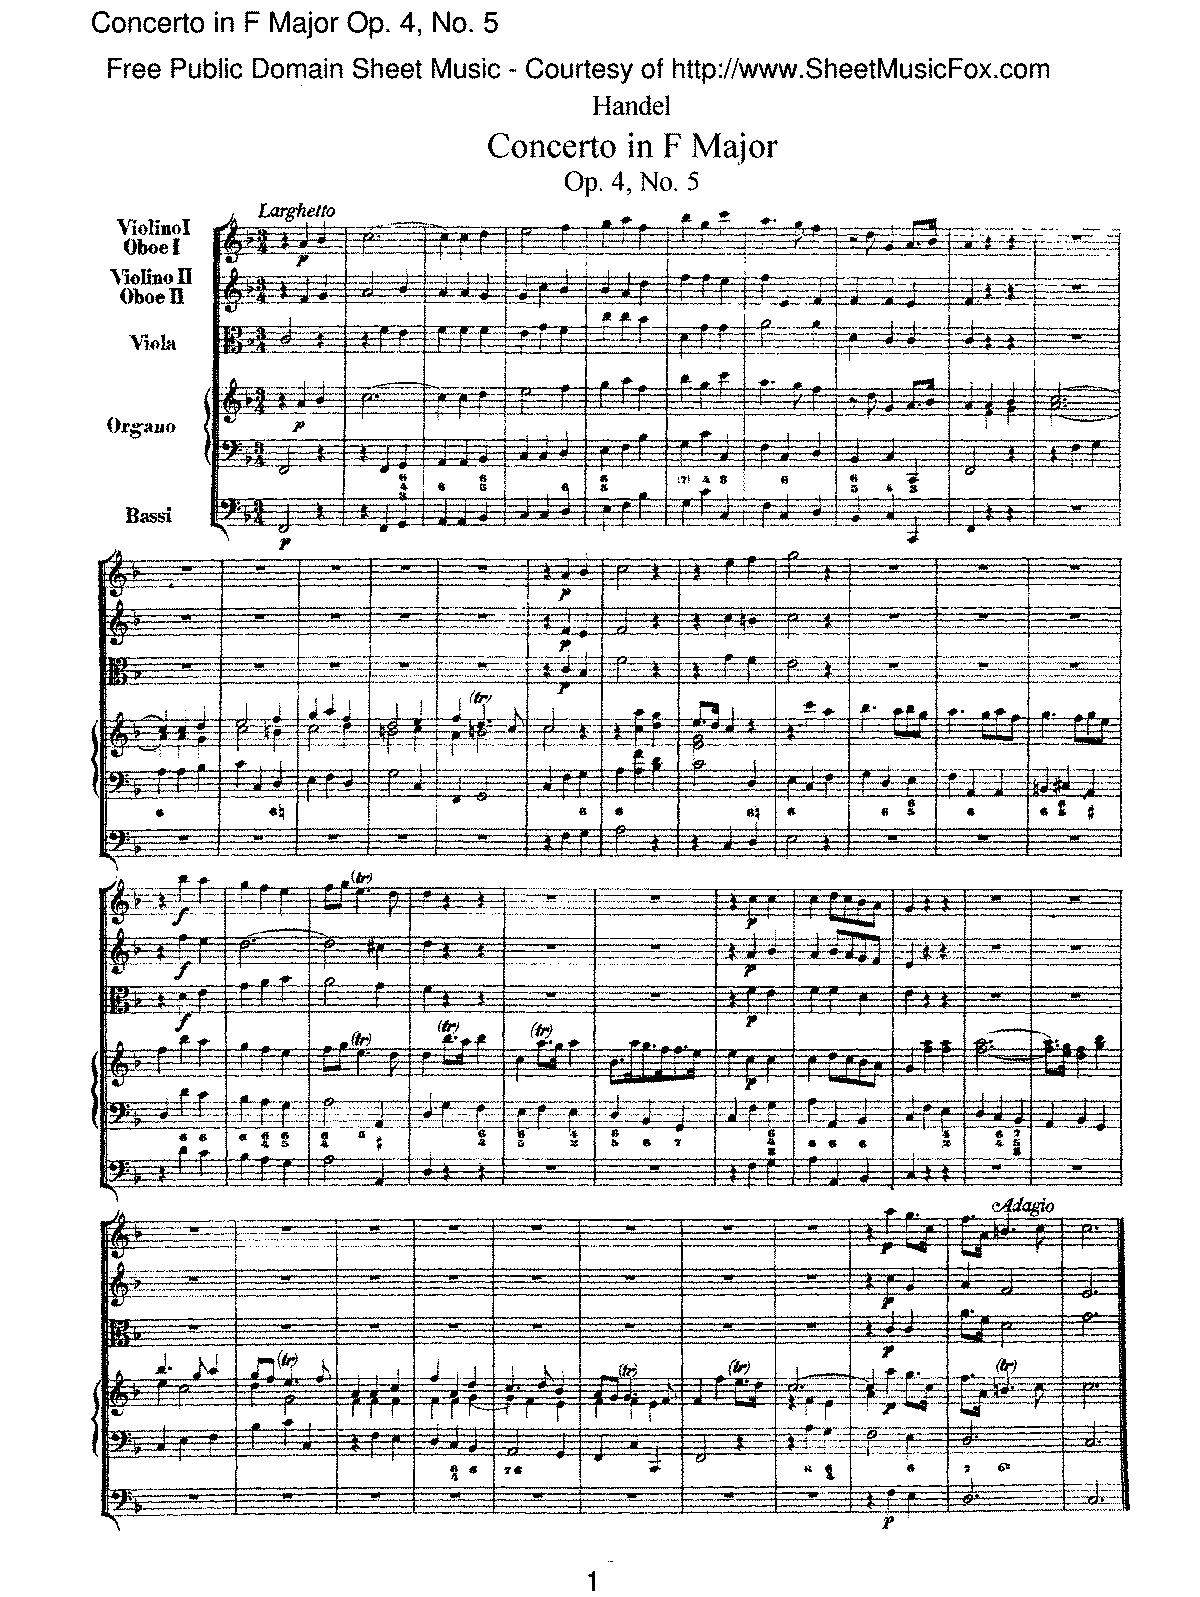 Handel - Concerto in F major, Op.4 No.5.pdf